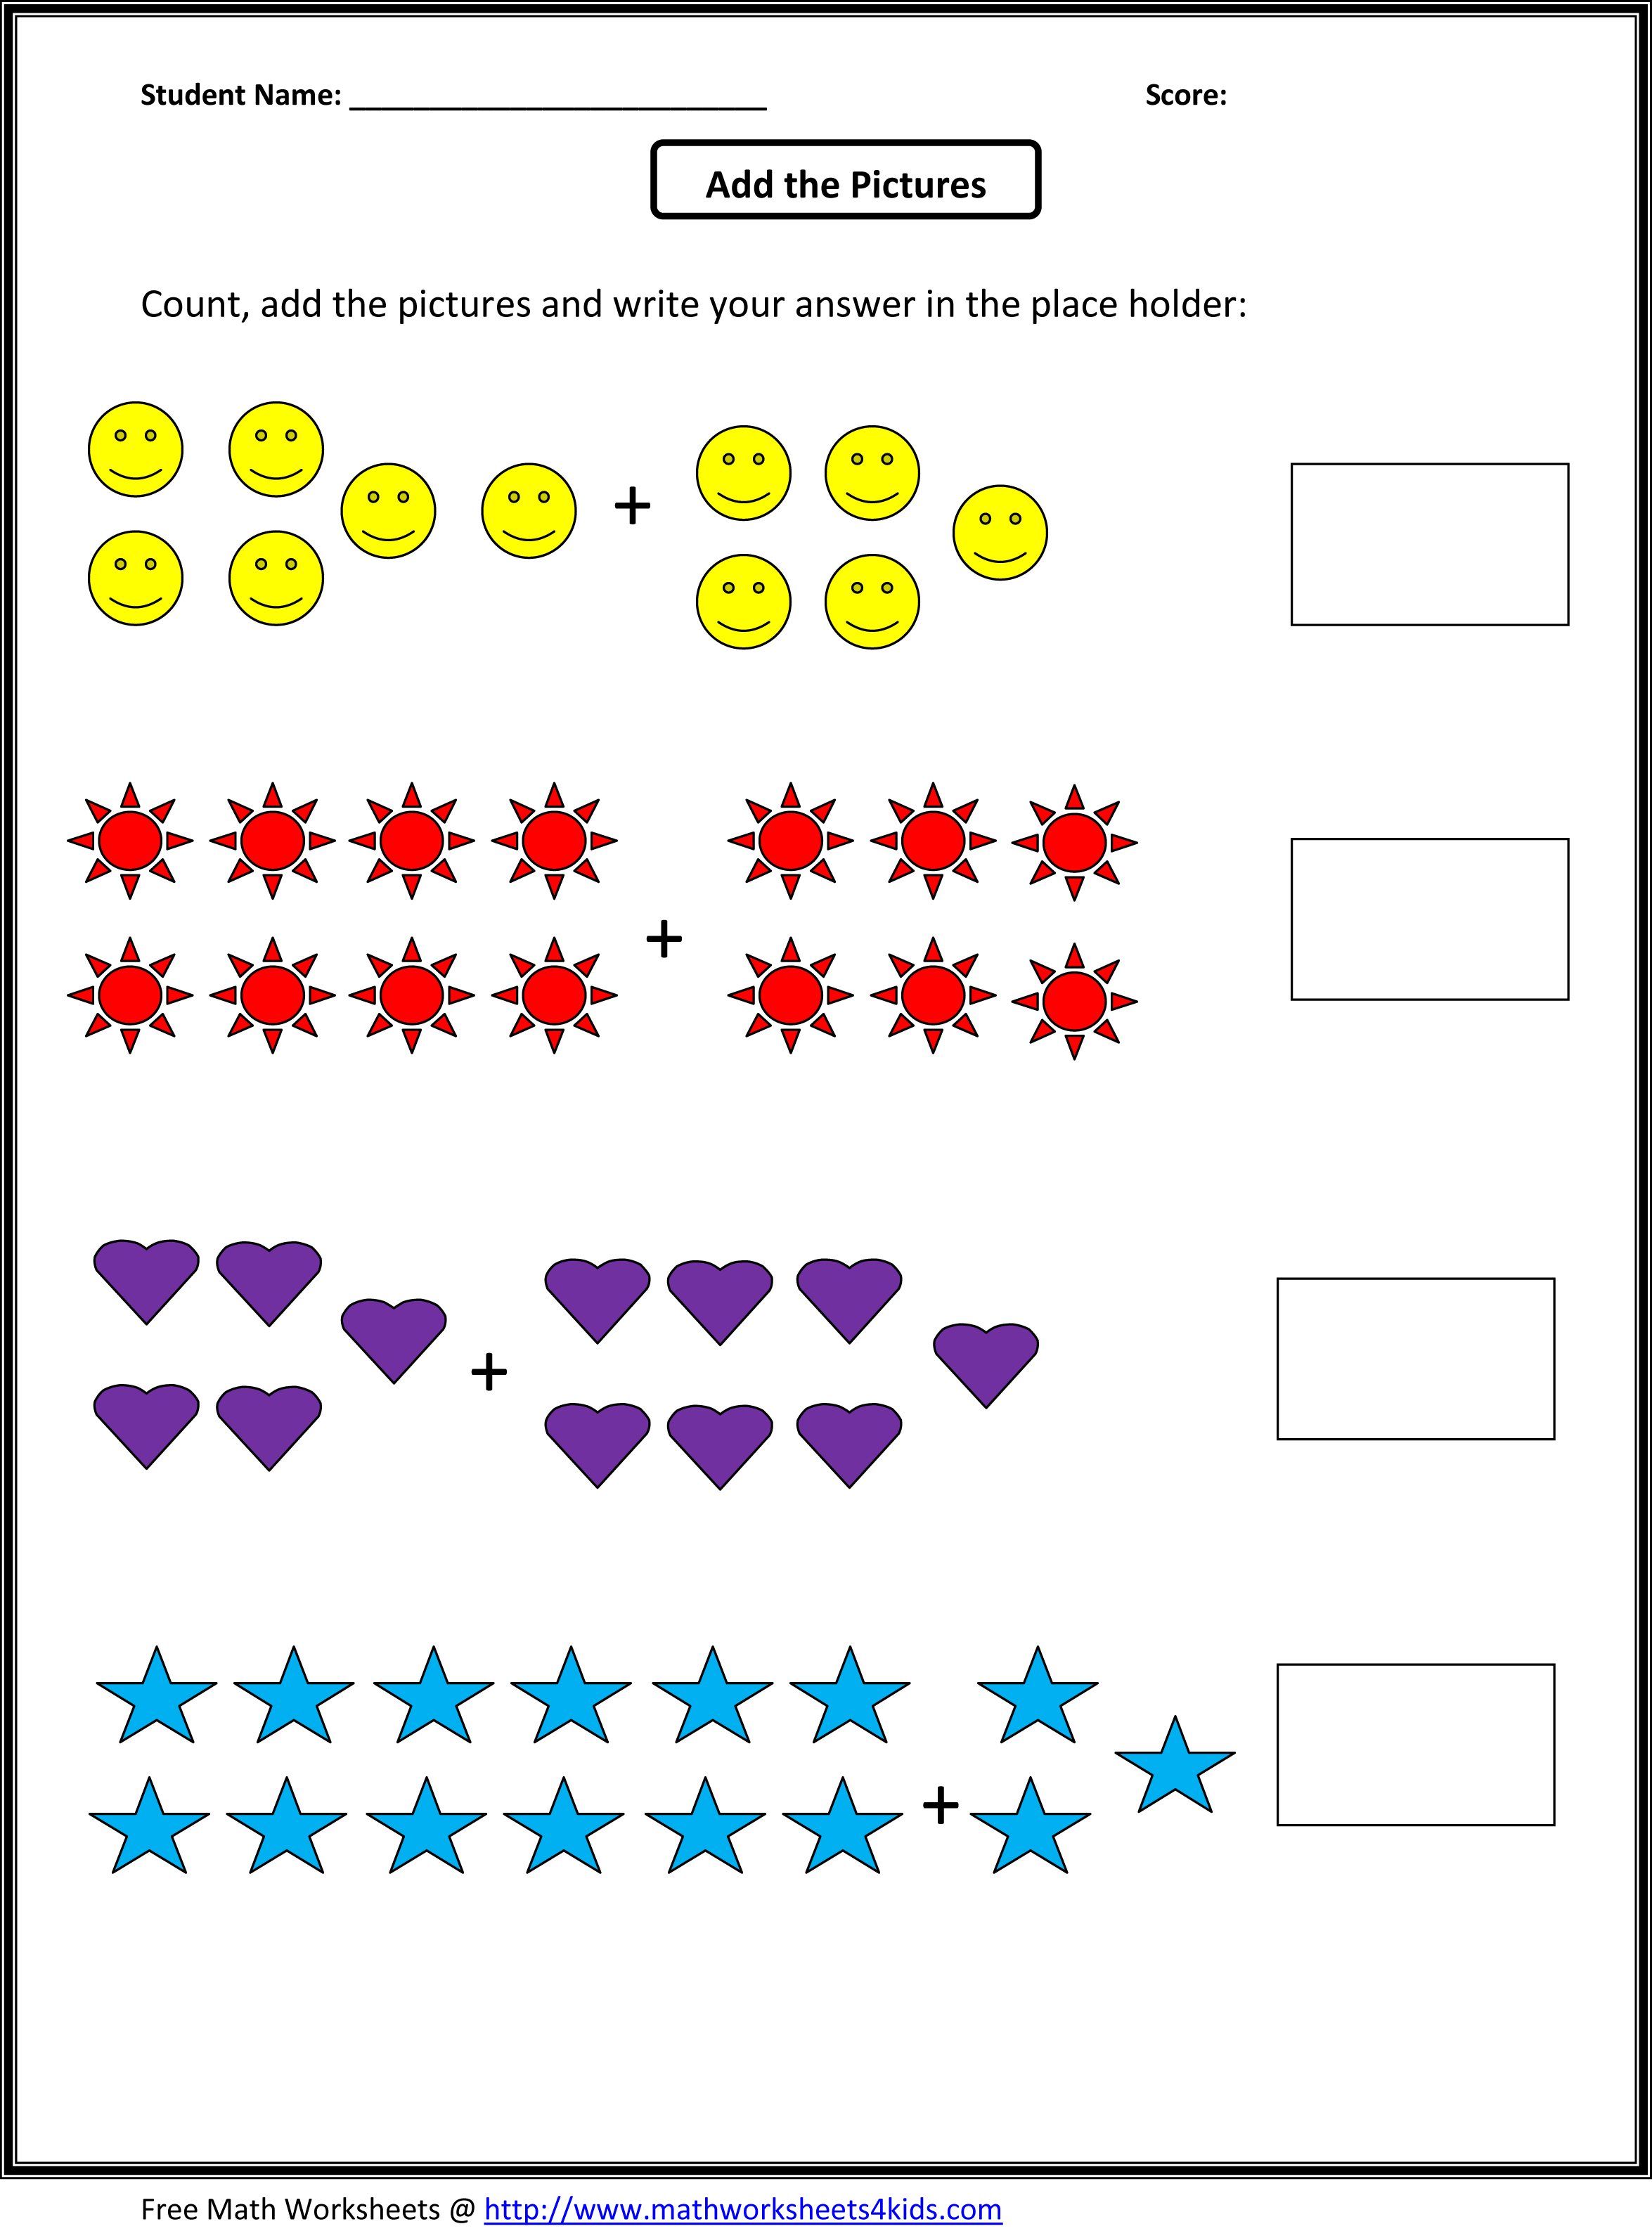 Proatmealus  Sweet Grade  Maths Worksheet  Reocurent With Magnificent Math Worksheets For St Grade Free  Reocurent With Endearing Calligraphy Worksheets Also Th Step Aa Worksheet In Addition Vocabulary Worksheet And Types Of Triangles Worksheet As Well As Linear Programming Worksheet Additionally Evolution Starts With Worksheet Answers From Reocurentcom With Proatmealus  Magnificent Grade  Maths Worksheet  Reocurent With Endearing Math Worksheets For St Grade Free  Reocurent And Sweet Calligraphy Worksheets Also Th Step Aa Worksheet In Addition Vocabulary Worksheet From Reocurentcom